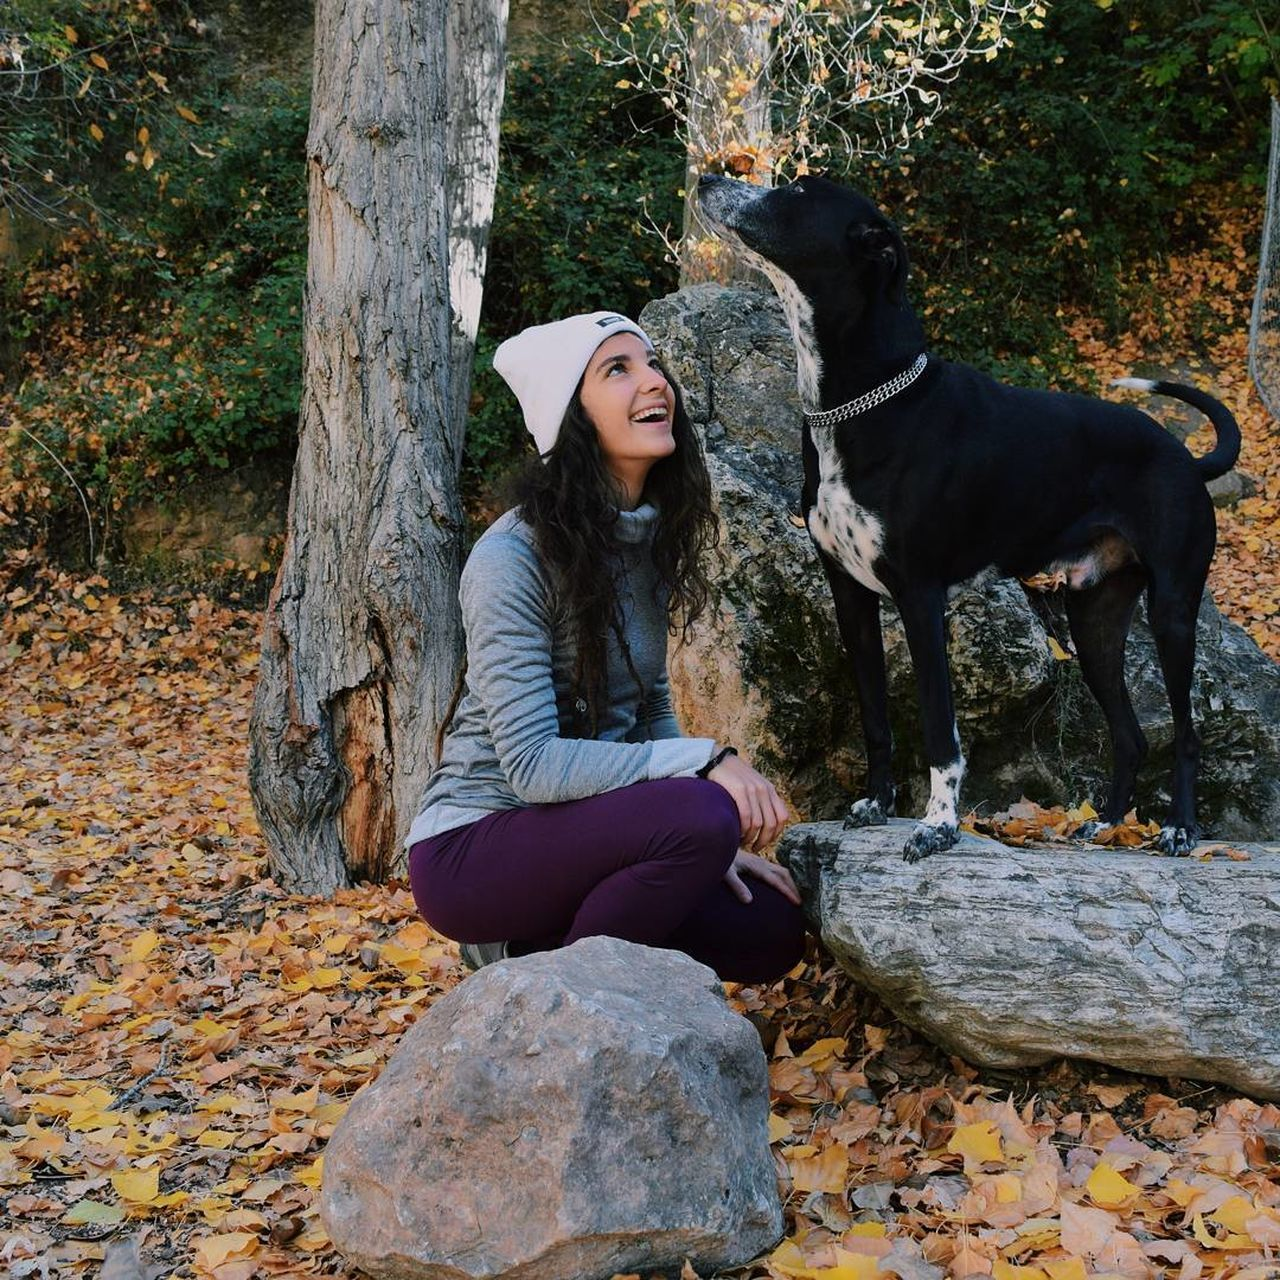 real people, leisure activity, full length, tree, one person, tree trunk, day, casual clothing, young women, lifestyles, front view, outdoors, sitting, young adult, one animal, dog, animal themes, nature, mammal, pets, domestic animals